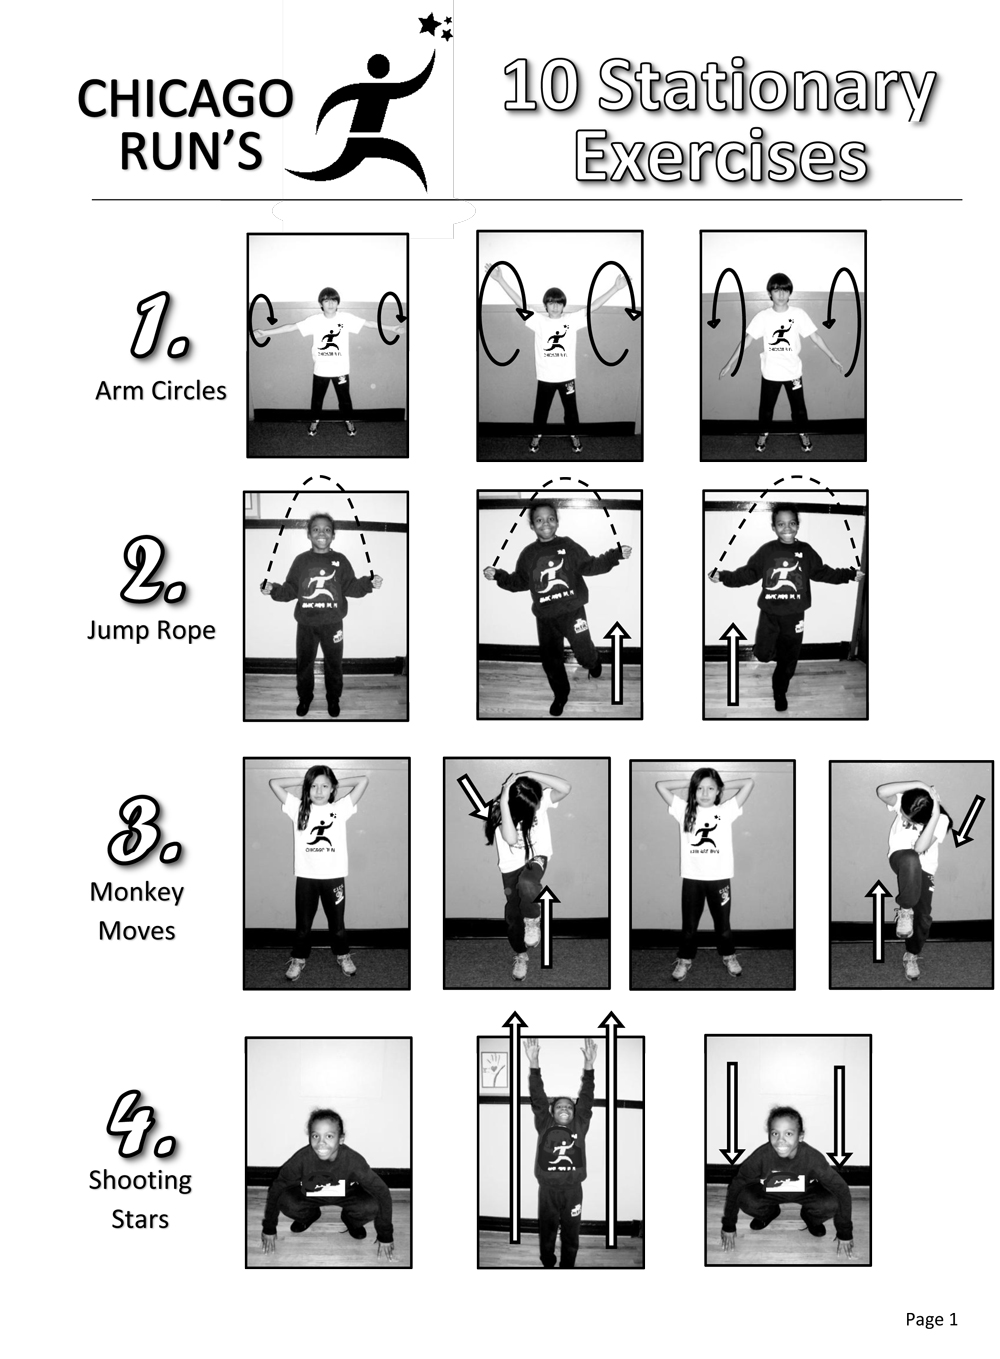 10-Stationary-Exercises.jpg